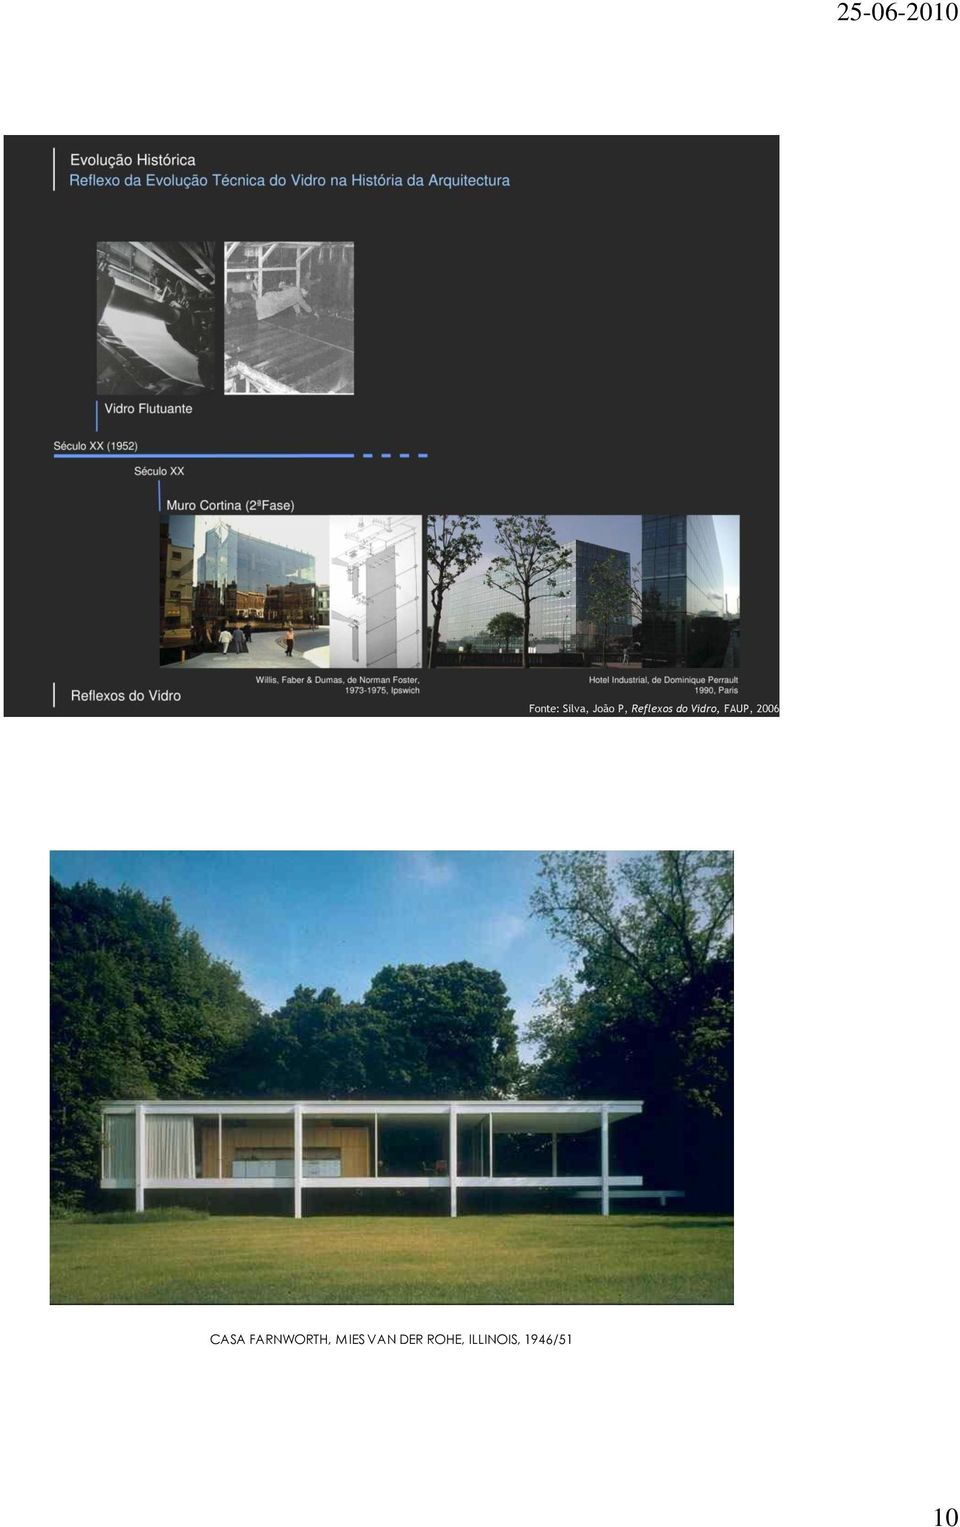 2006 CASA FARNWORTH, MIES